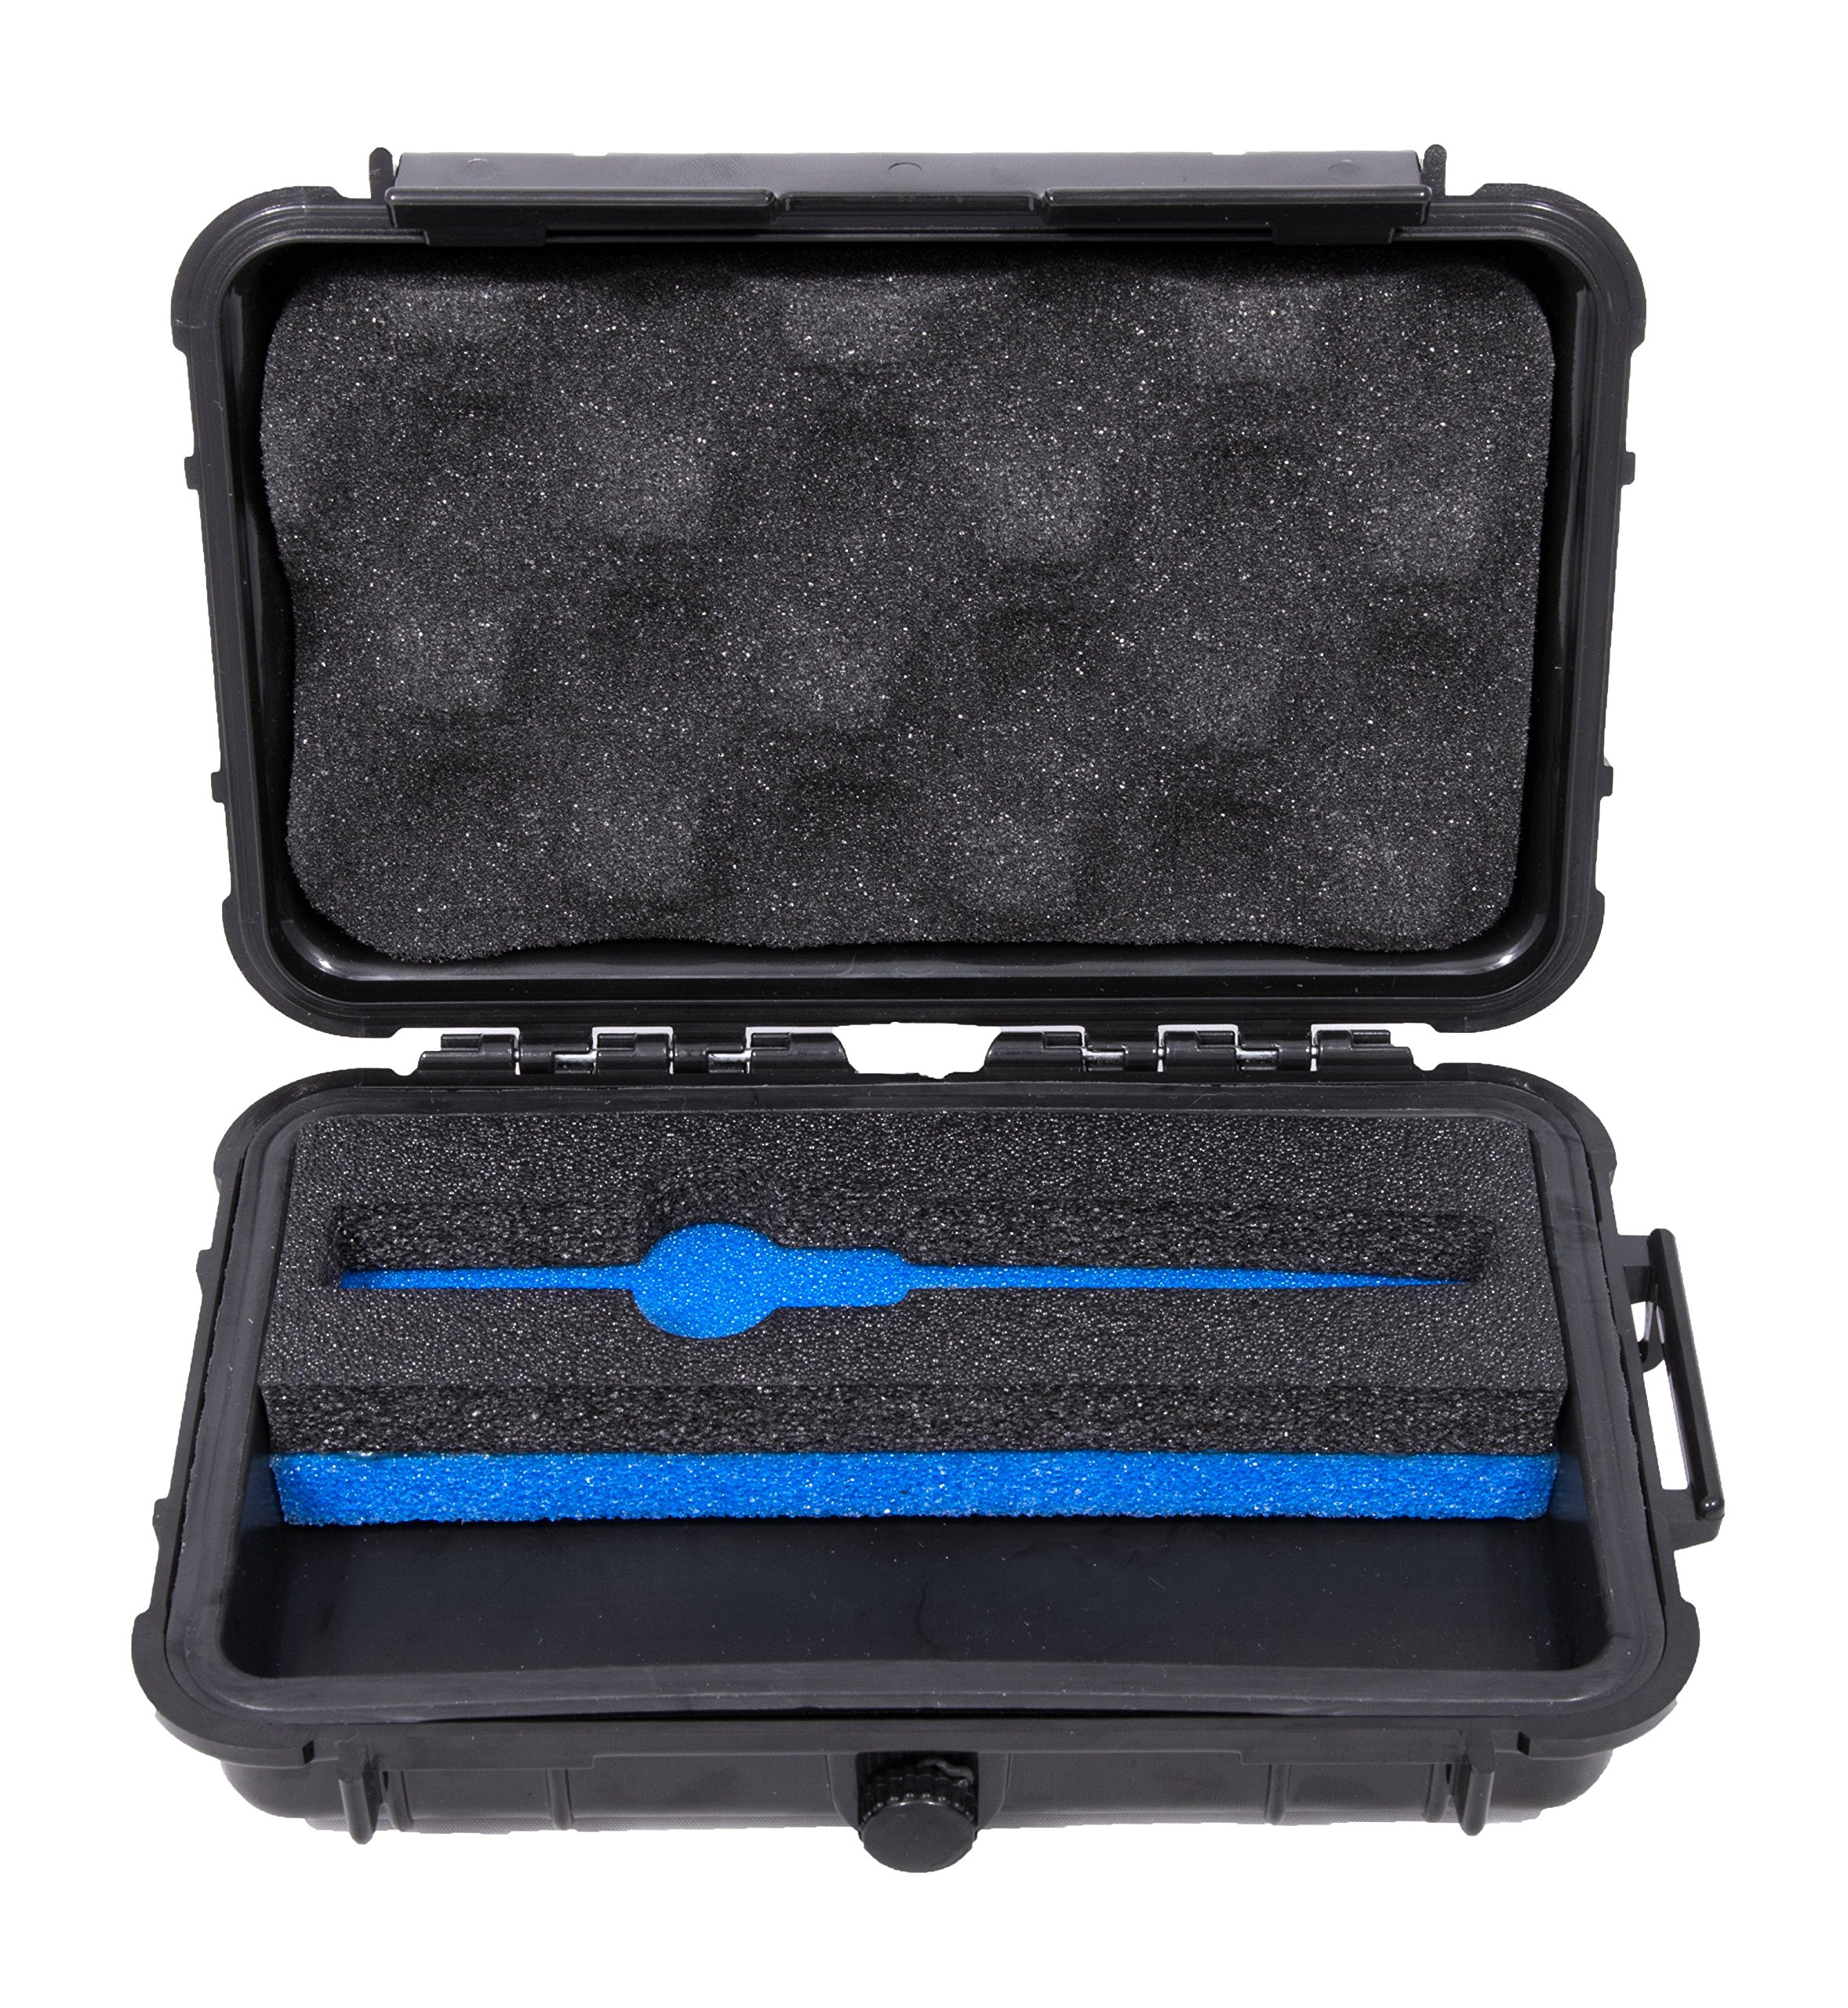 CLOUD/TEN Smell Proof Carry Case For V2 Pro Series 3x Portable Pen and Accessories Such as Cartridges, Coils, Atomizers, Charge Adapter and More - Includes FREE HERB CANISTER and GRINDER by CLOUD/TEN (Image #1)